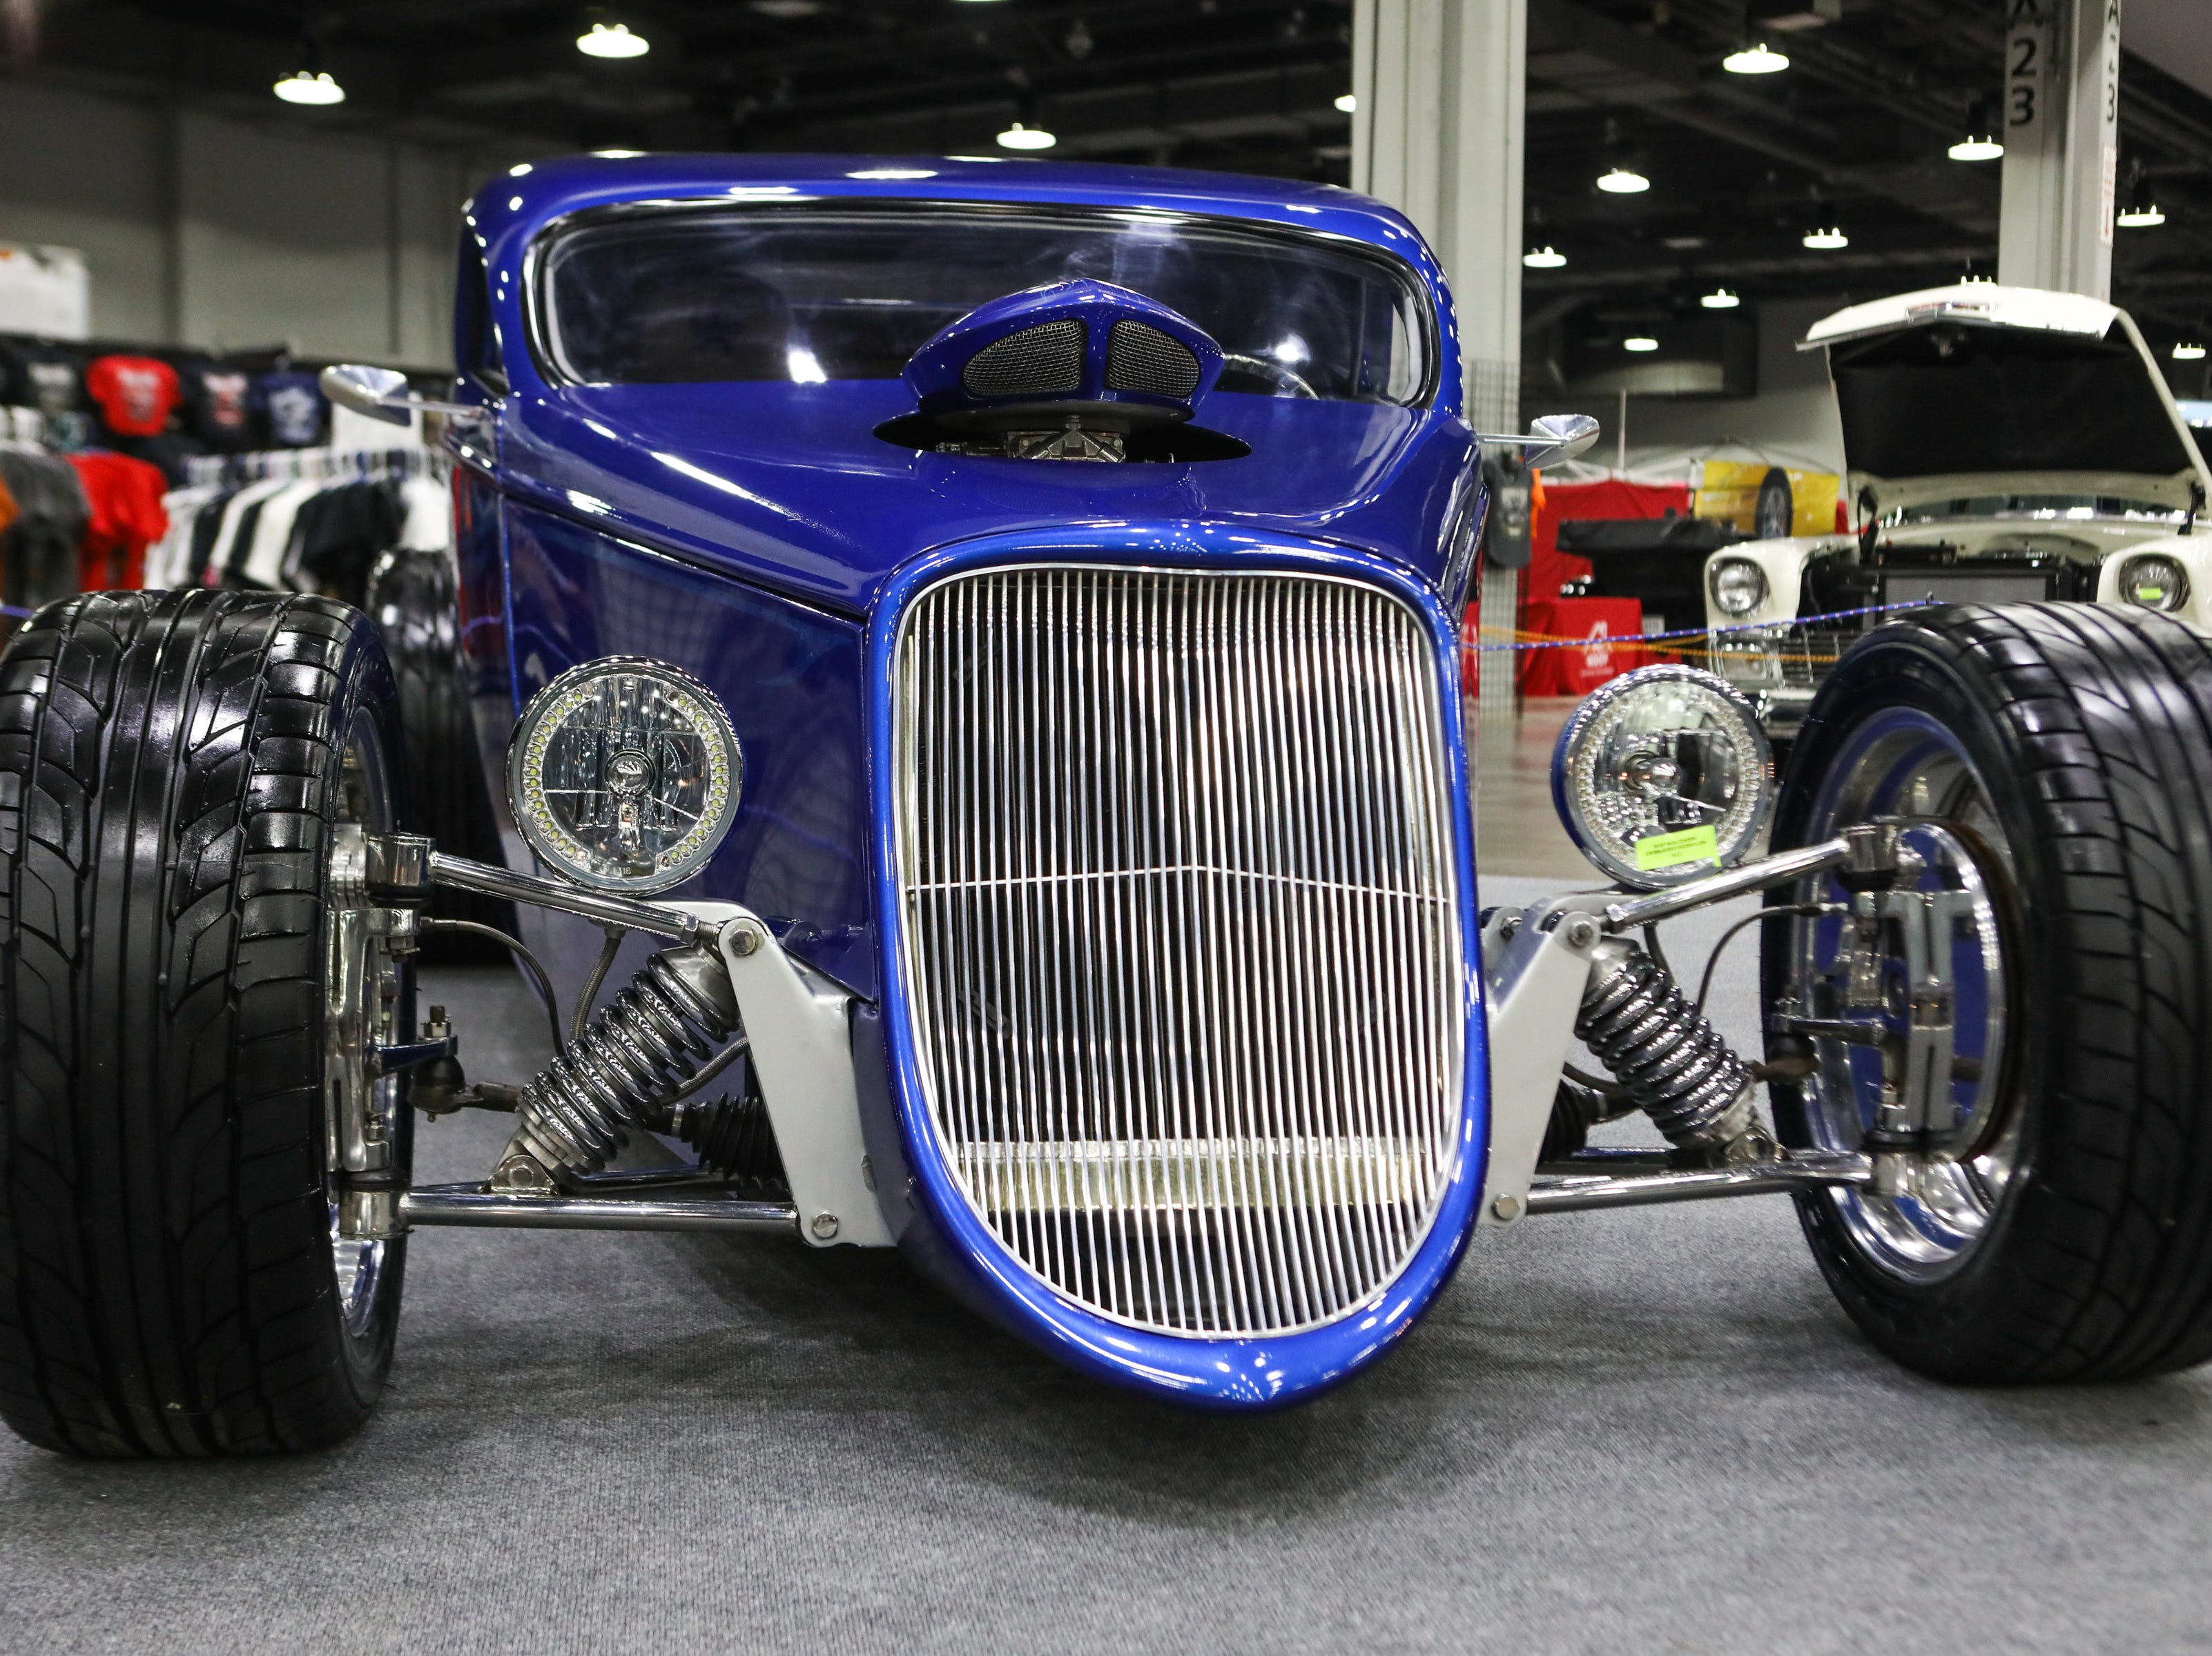 A 1933 Ford Coupe. The 2019 annual KOI Cavalcade of Customs Car Show will feature hundreds of cars, trucks, motorcycles and other vehicles to view at the Duke Energy Convention Center.